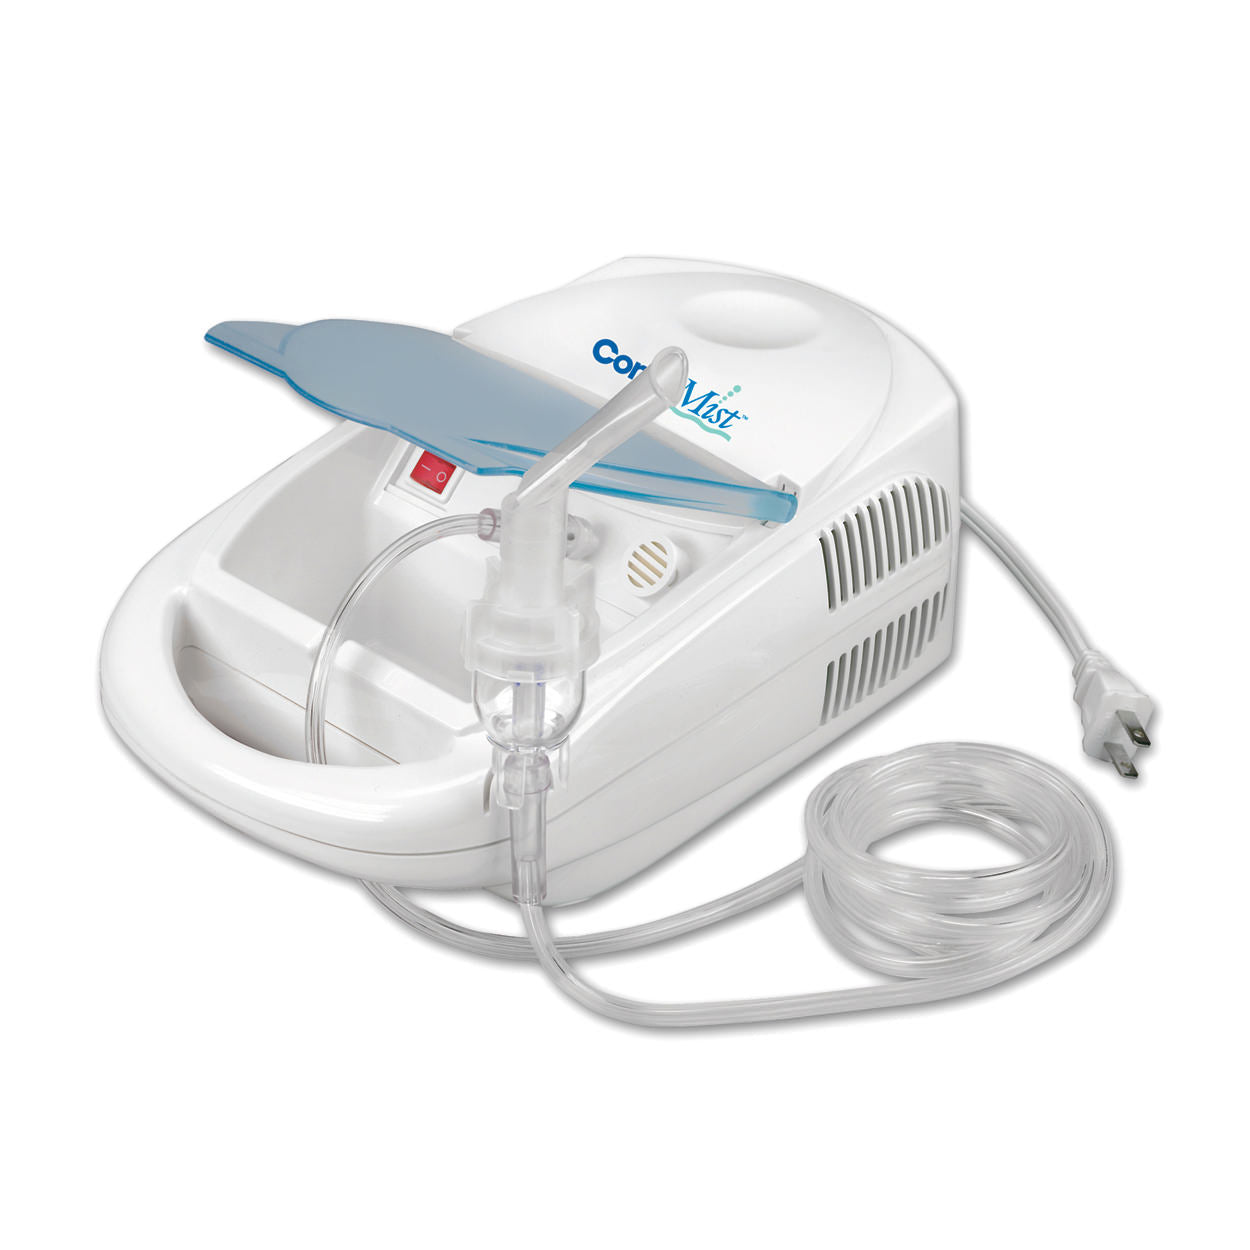 Parts for CompMist Compressor Nebulizer System